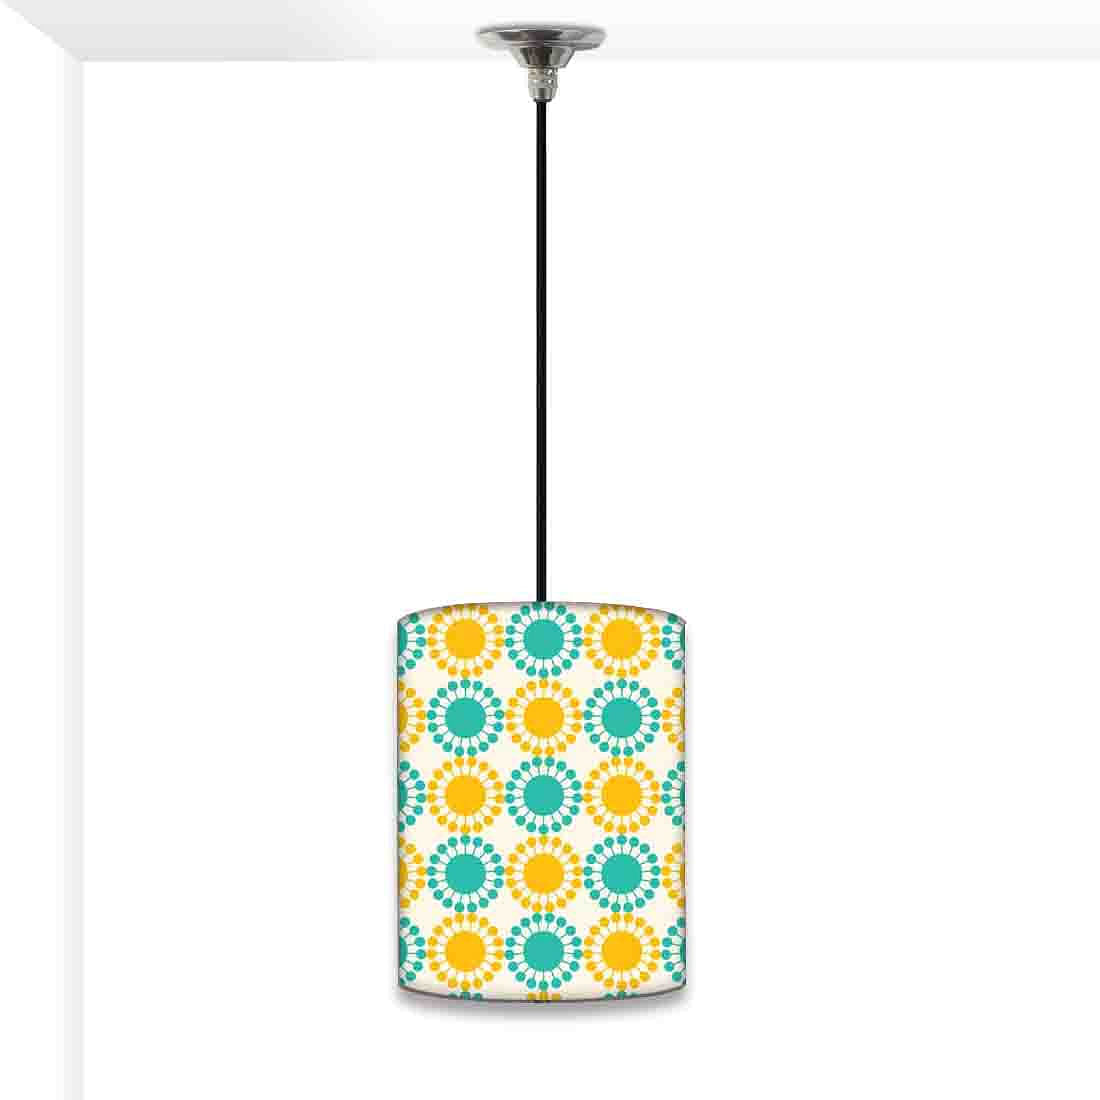 Hanging Ceiling Lamps For Living Room